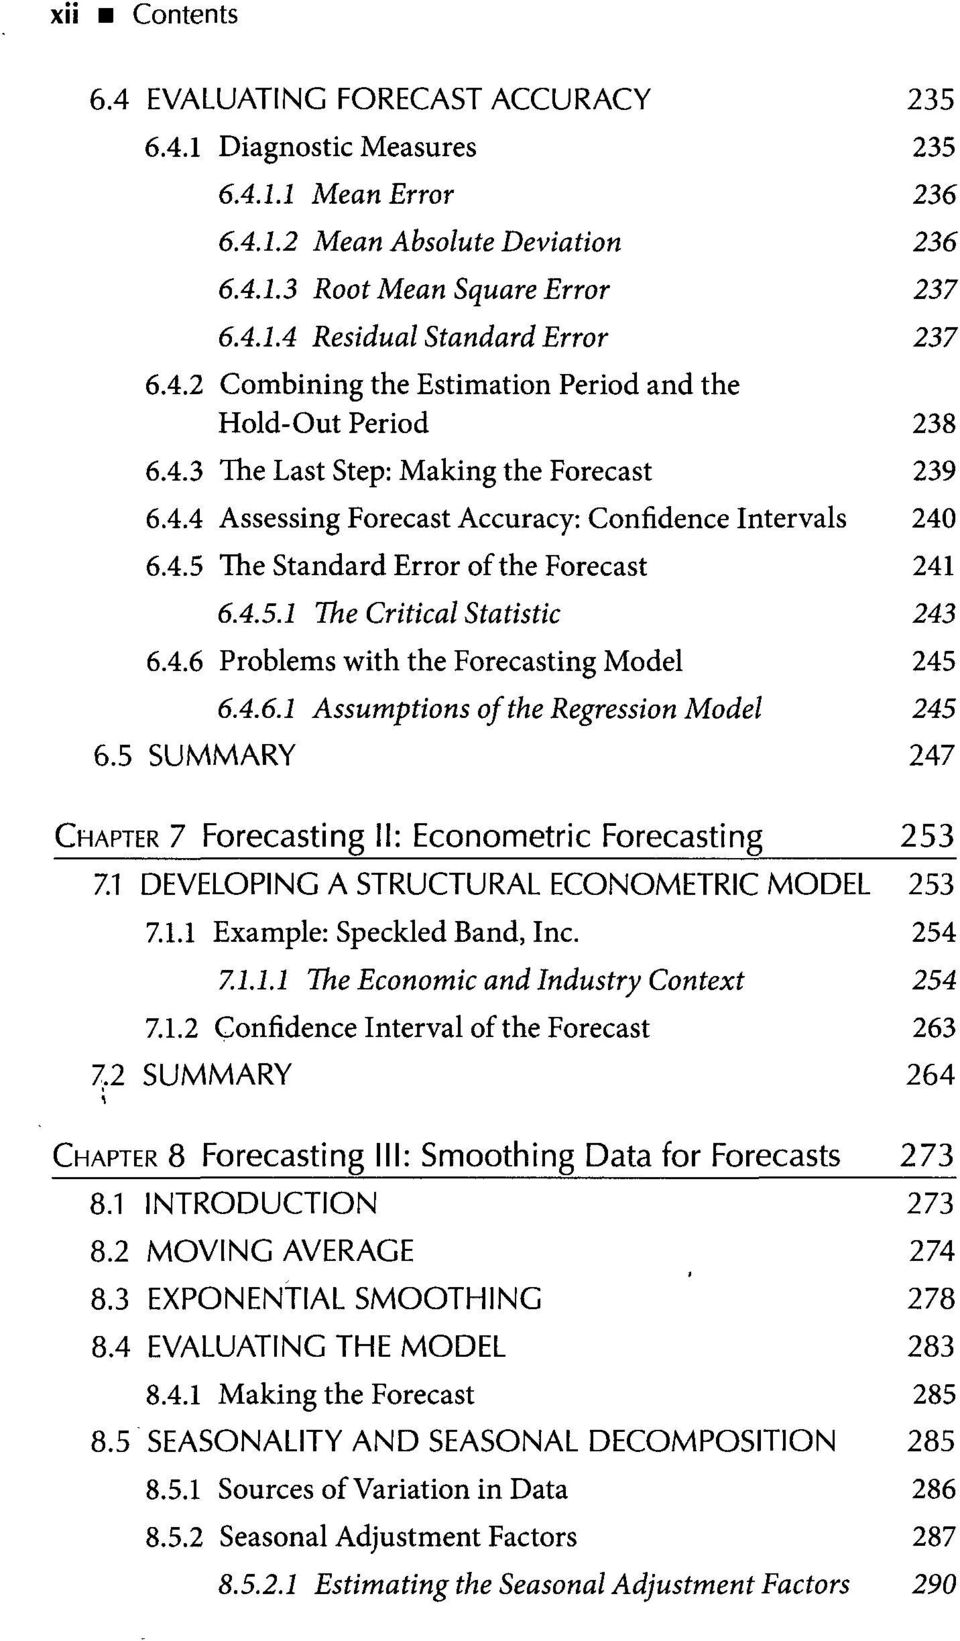 4.5.1 The Critical Statistic 243 6.4.6 Problems with the Forecasting Model 245 6.4.6.1 Assumptions of the Regression Model 245 6.5 SUMMARY 247 CHAPTER 7 Forecasting II: Econometric Forecasting 253 7.